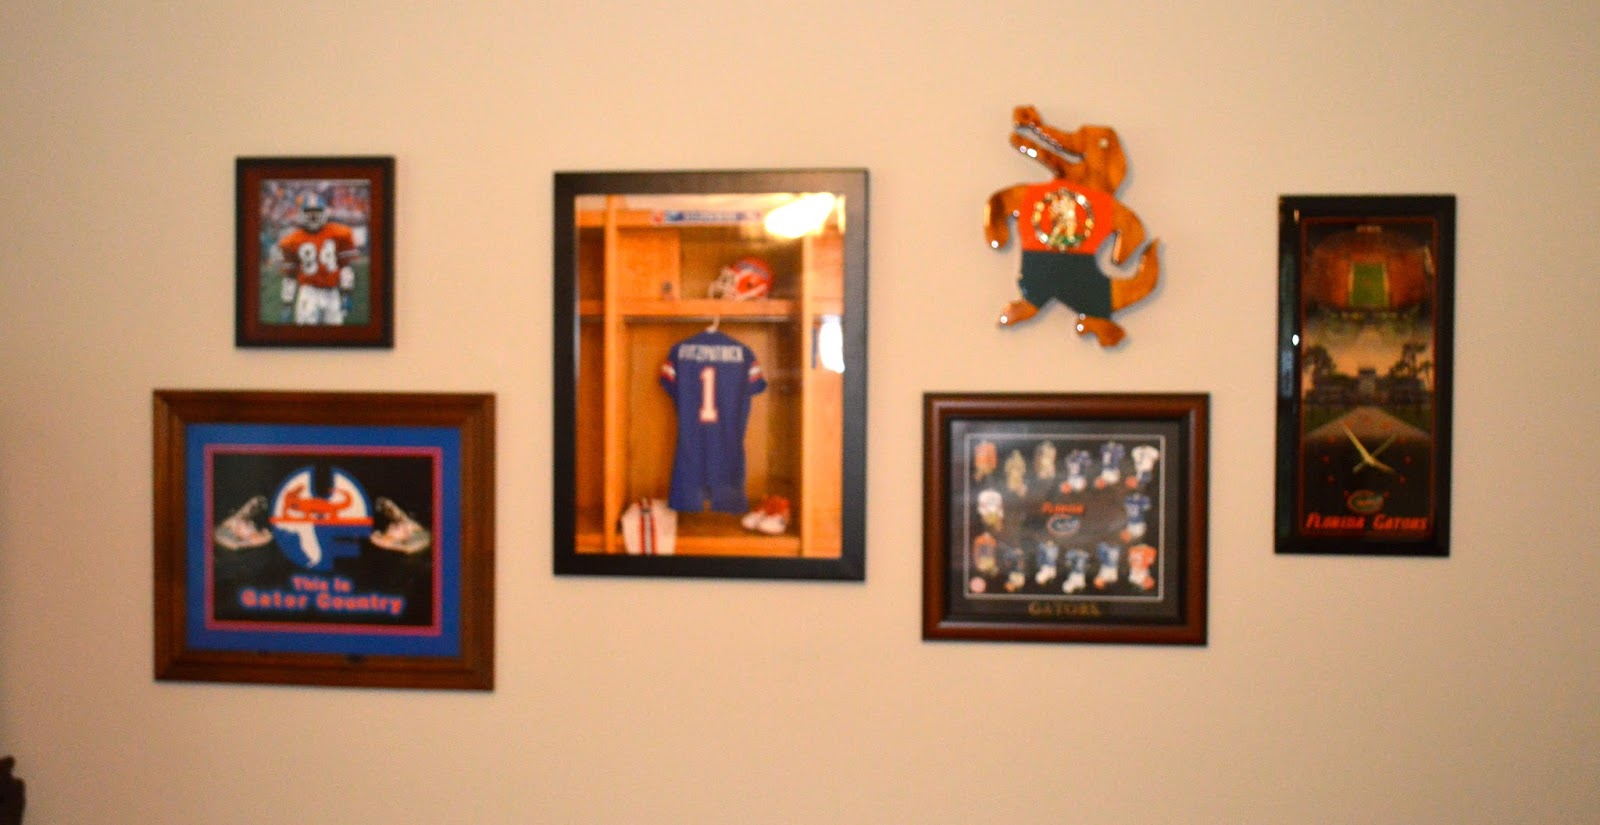 Splendid Spaces: Creating a Gallery Wall with Sports Memorabilia